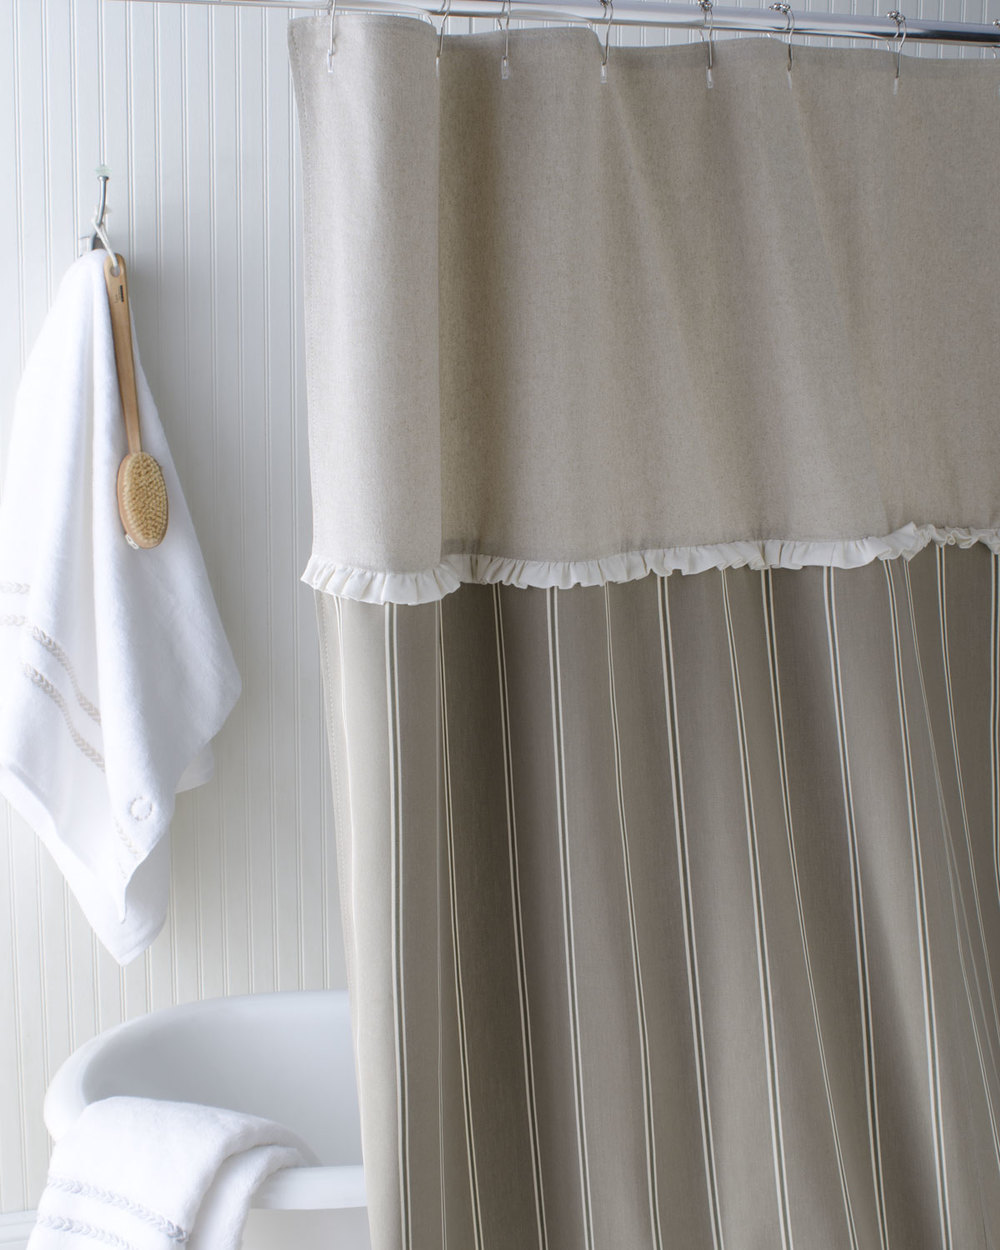 Elegant, sophisticated: French Stripe Shower Curtain from French Laundry Home